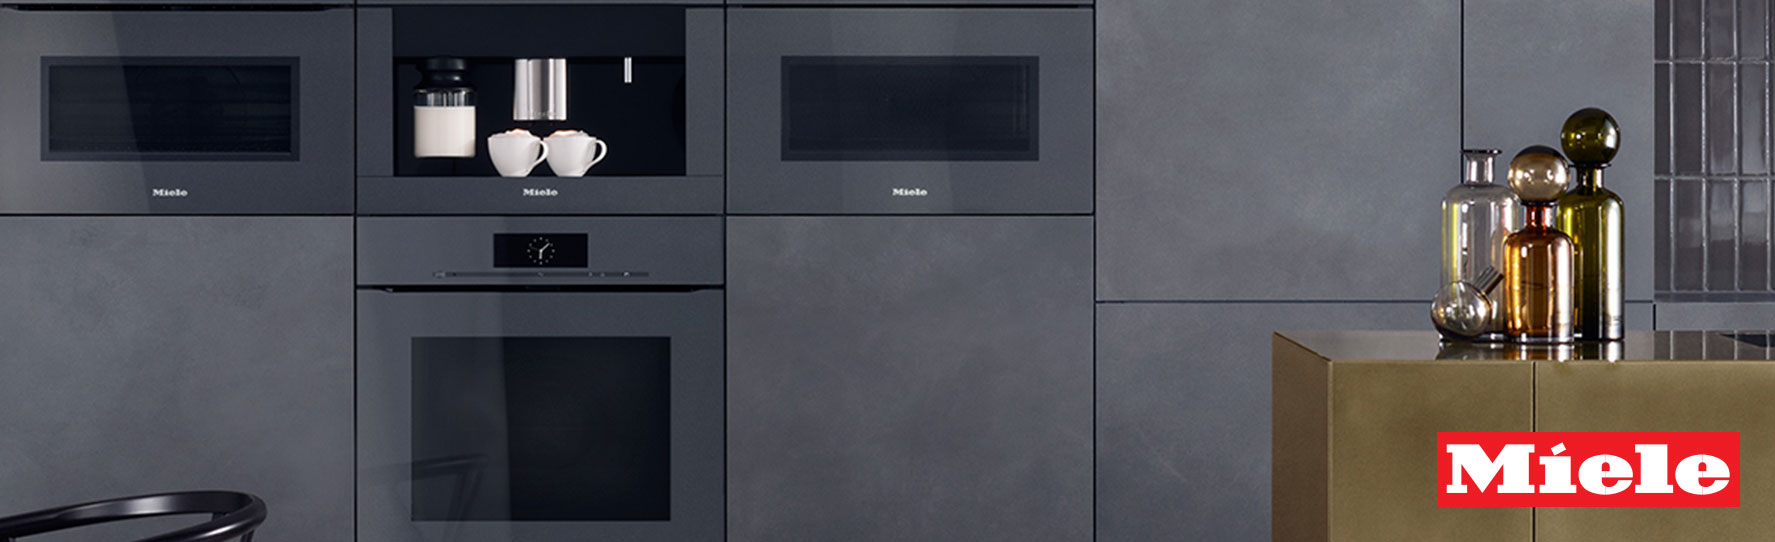 miele kitchen appliances rectangle table products at standard tv appliance authorizedmieleretailer